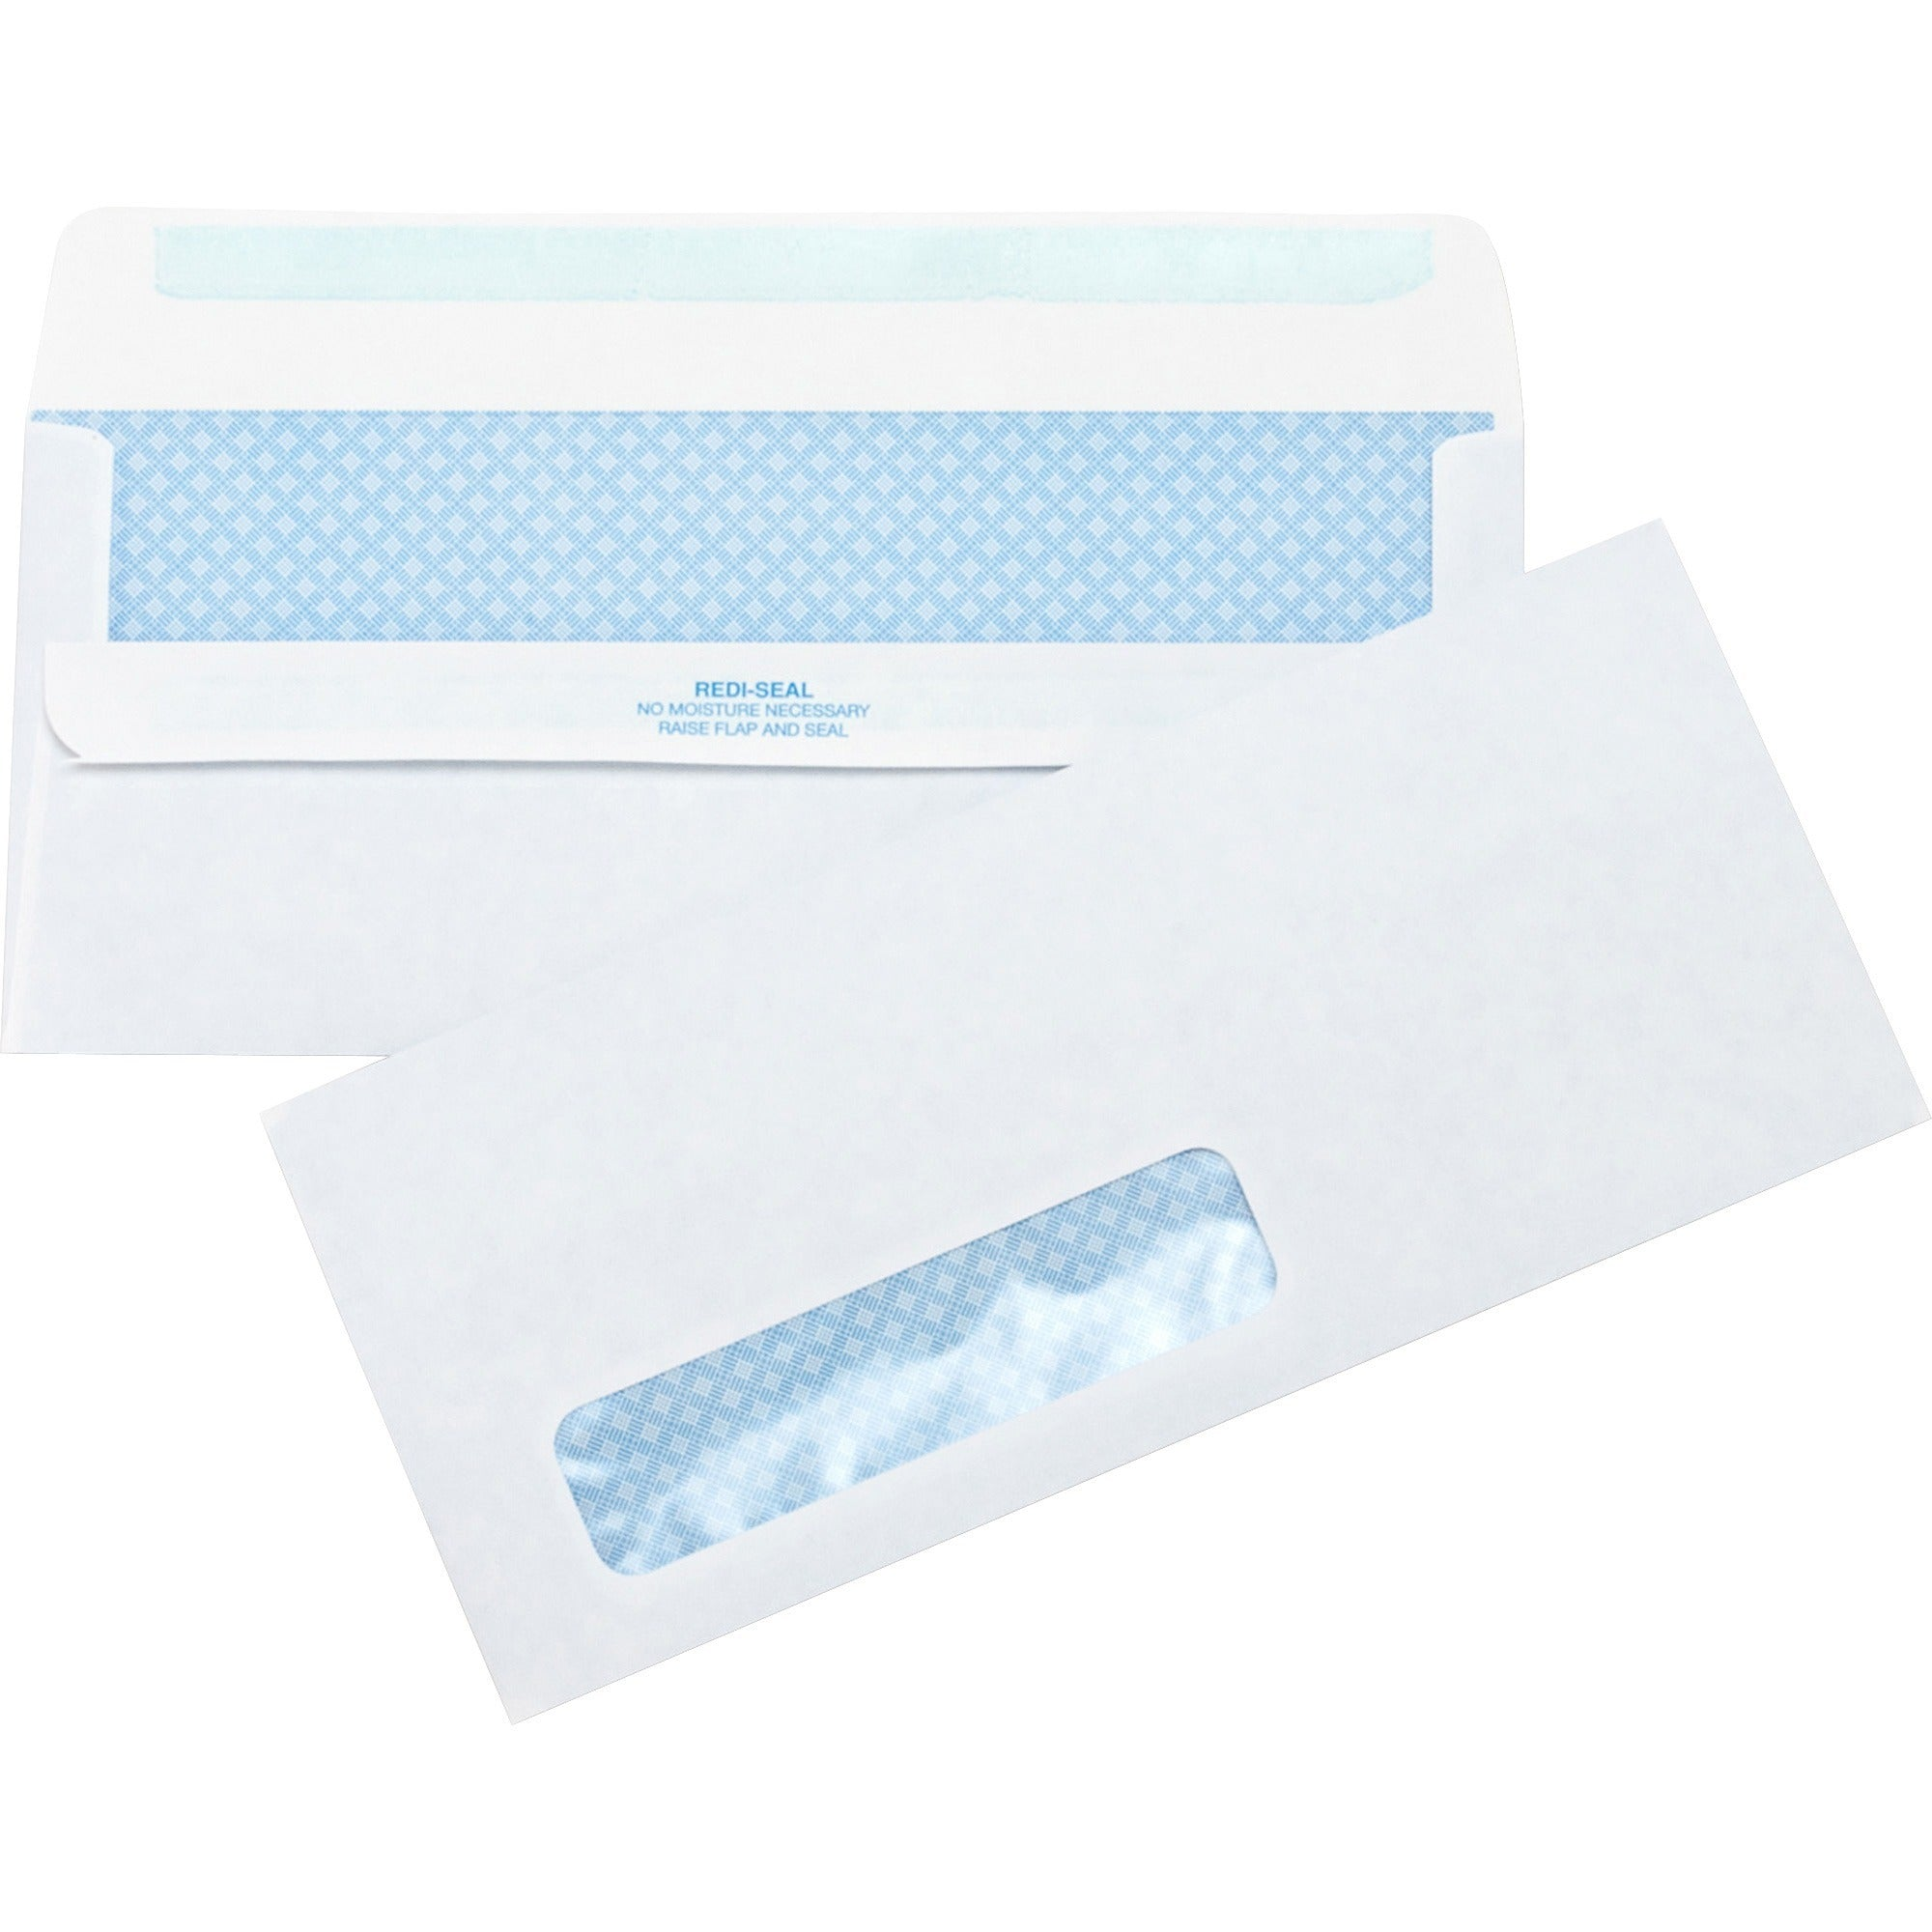 Business Source No.10 Standard Window Invoice Envelopes